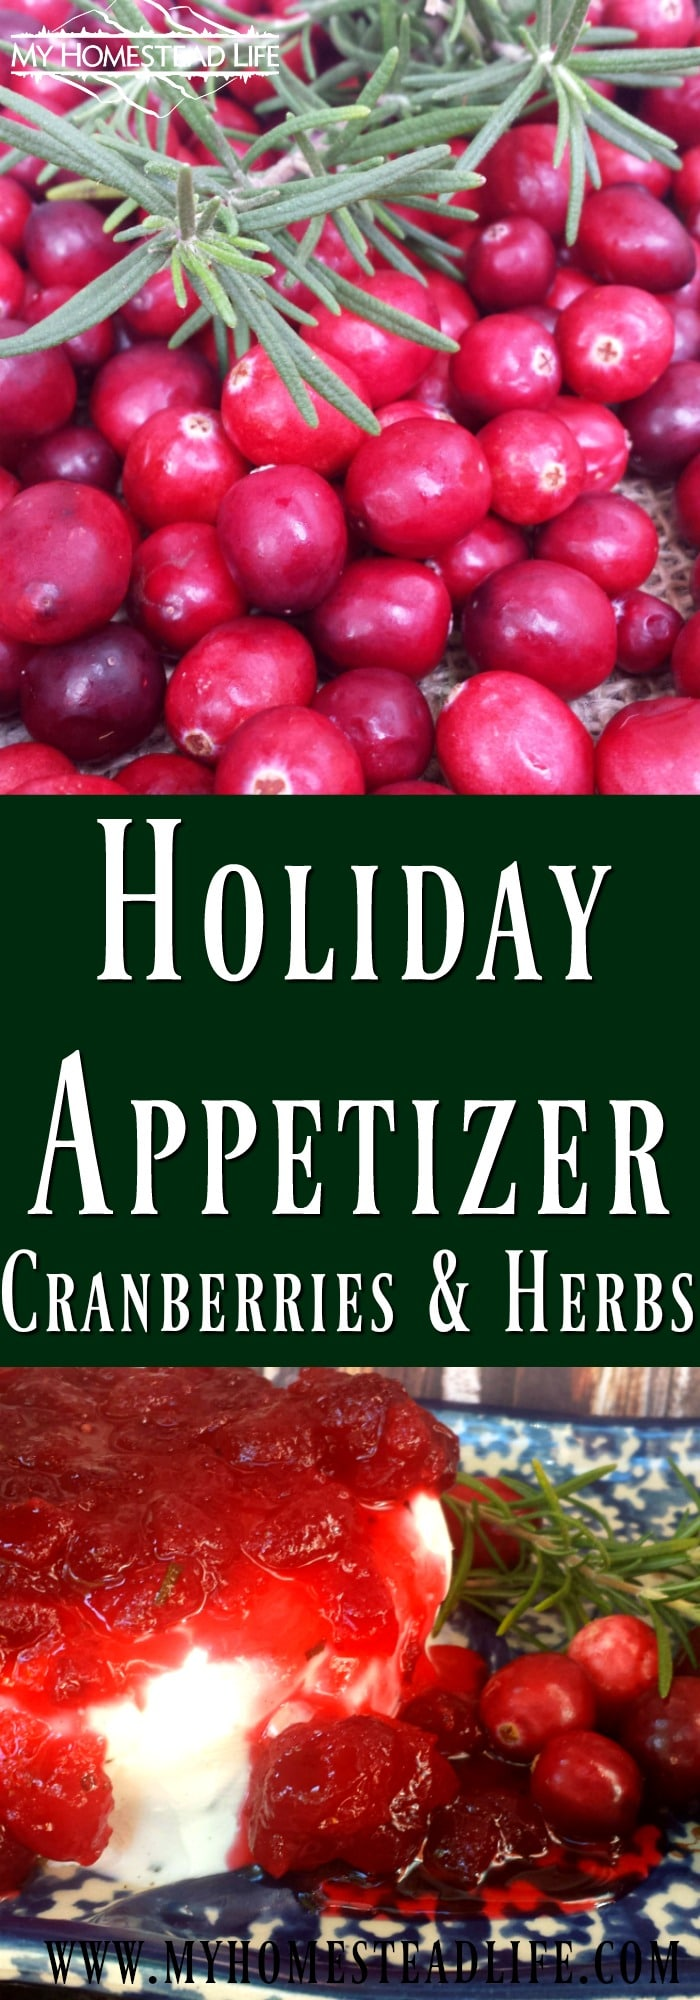 Easy Holiday Appetizer With Fresh Cranberries and Herbs